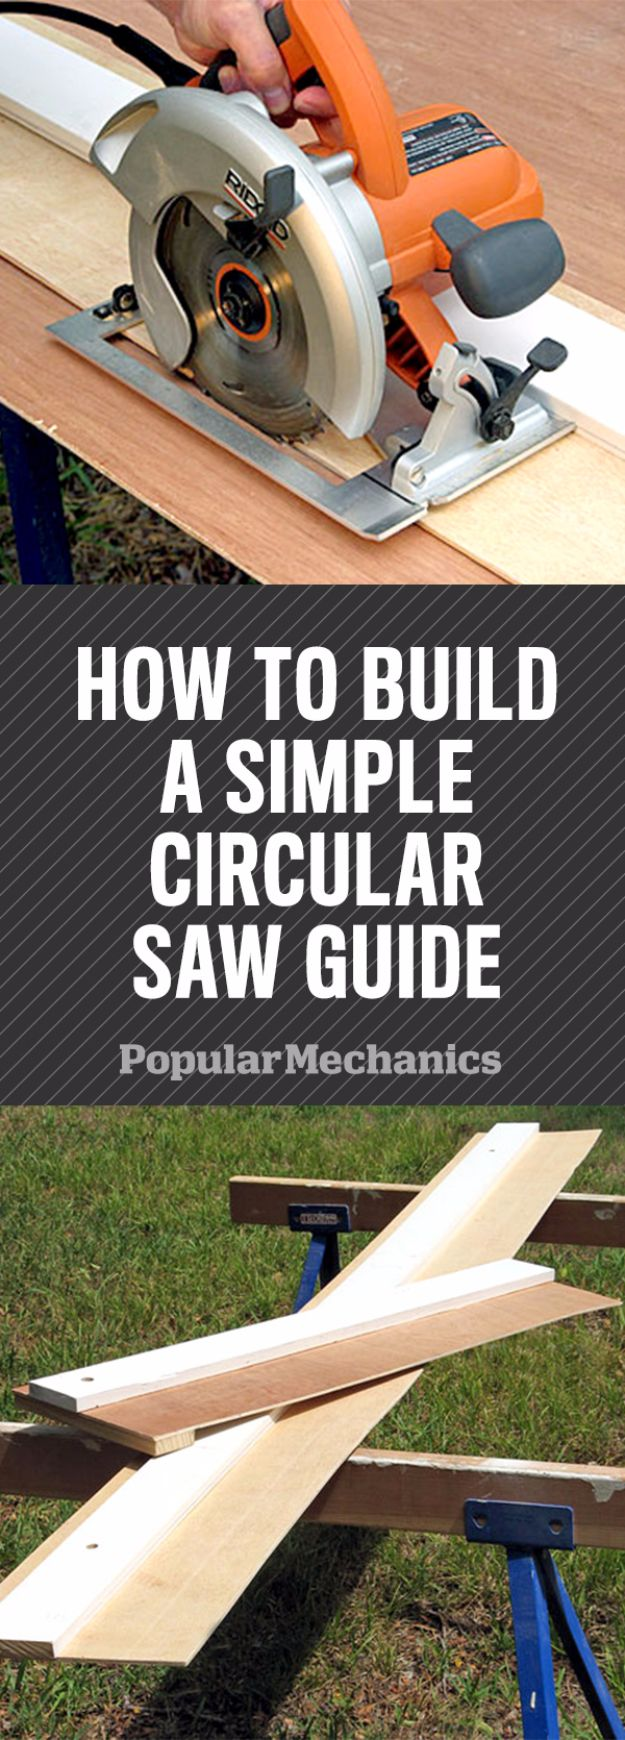 Cool Woodworking Tips - Build a Simple Circular Saw Guide for Straighter Cuts - Easy Woodworking Ideas, Woodworking Tips and Tricks, Woodworking Tips For Beginners, Basic Guide For Woodworking - Refinishing Wood, Sanding and Staining, Cleaning Wood and Upcycling Pallets - Tips for Wooden Craft Projects http://diyjoy.com/diy-woodworking-ideas